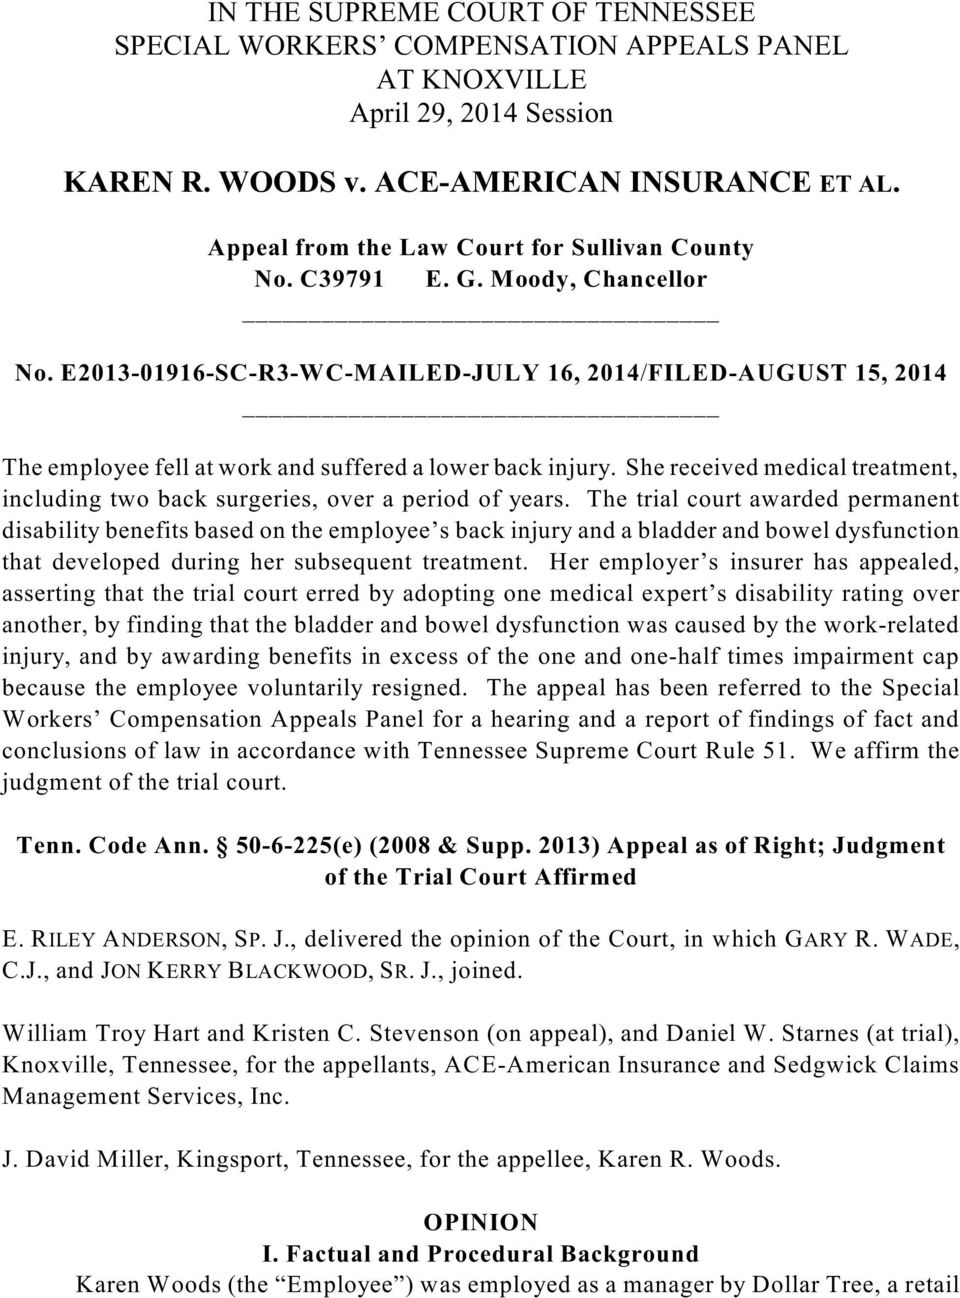 E2013-01916-SC-R3-WC-MAILED-JULY 16, 2014/FILED-AUGUST 15, 2014 The employee fell at work and suffered a lower back injury.